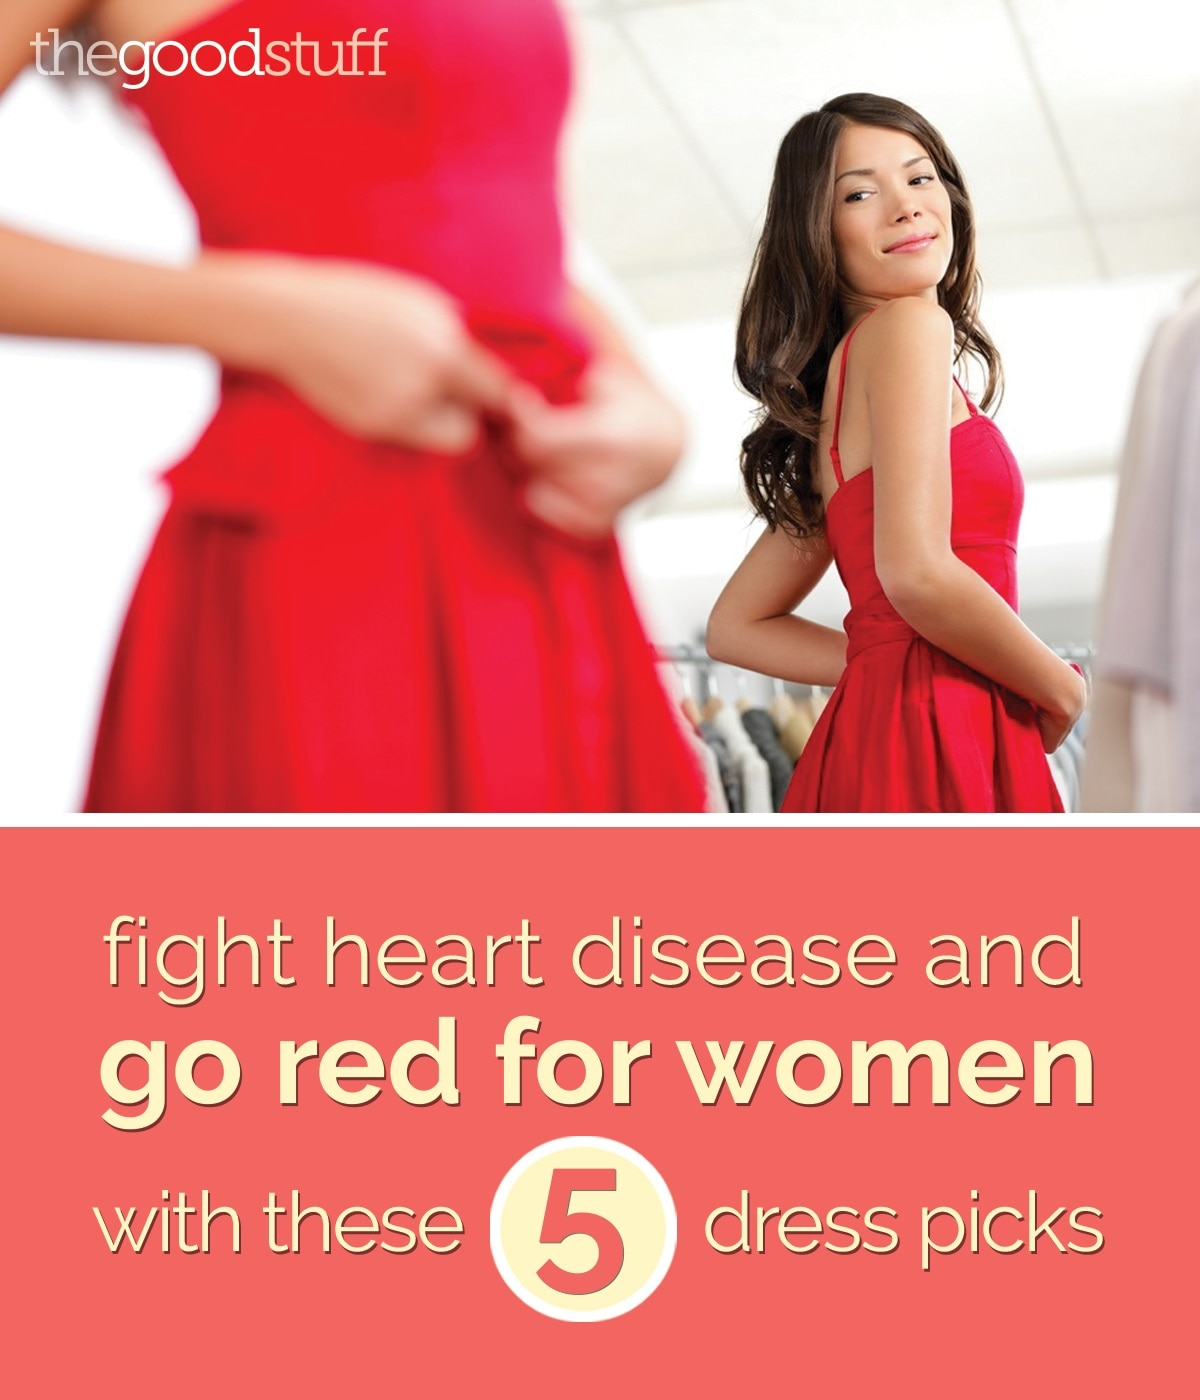 style-go-red-for-women